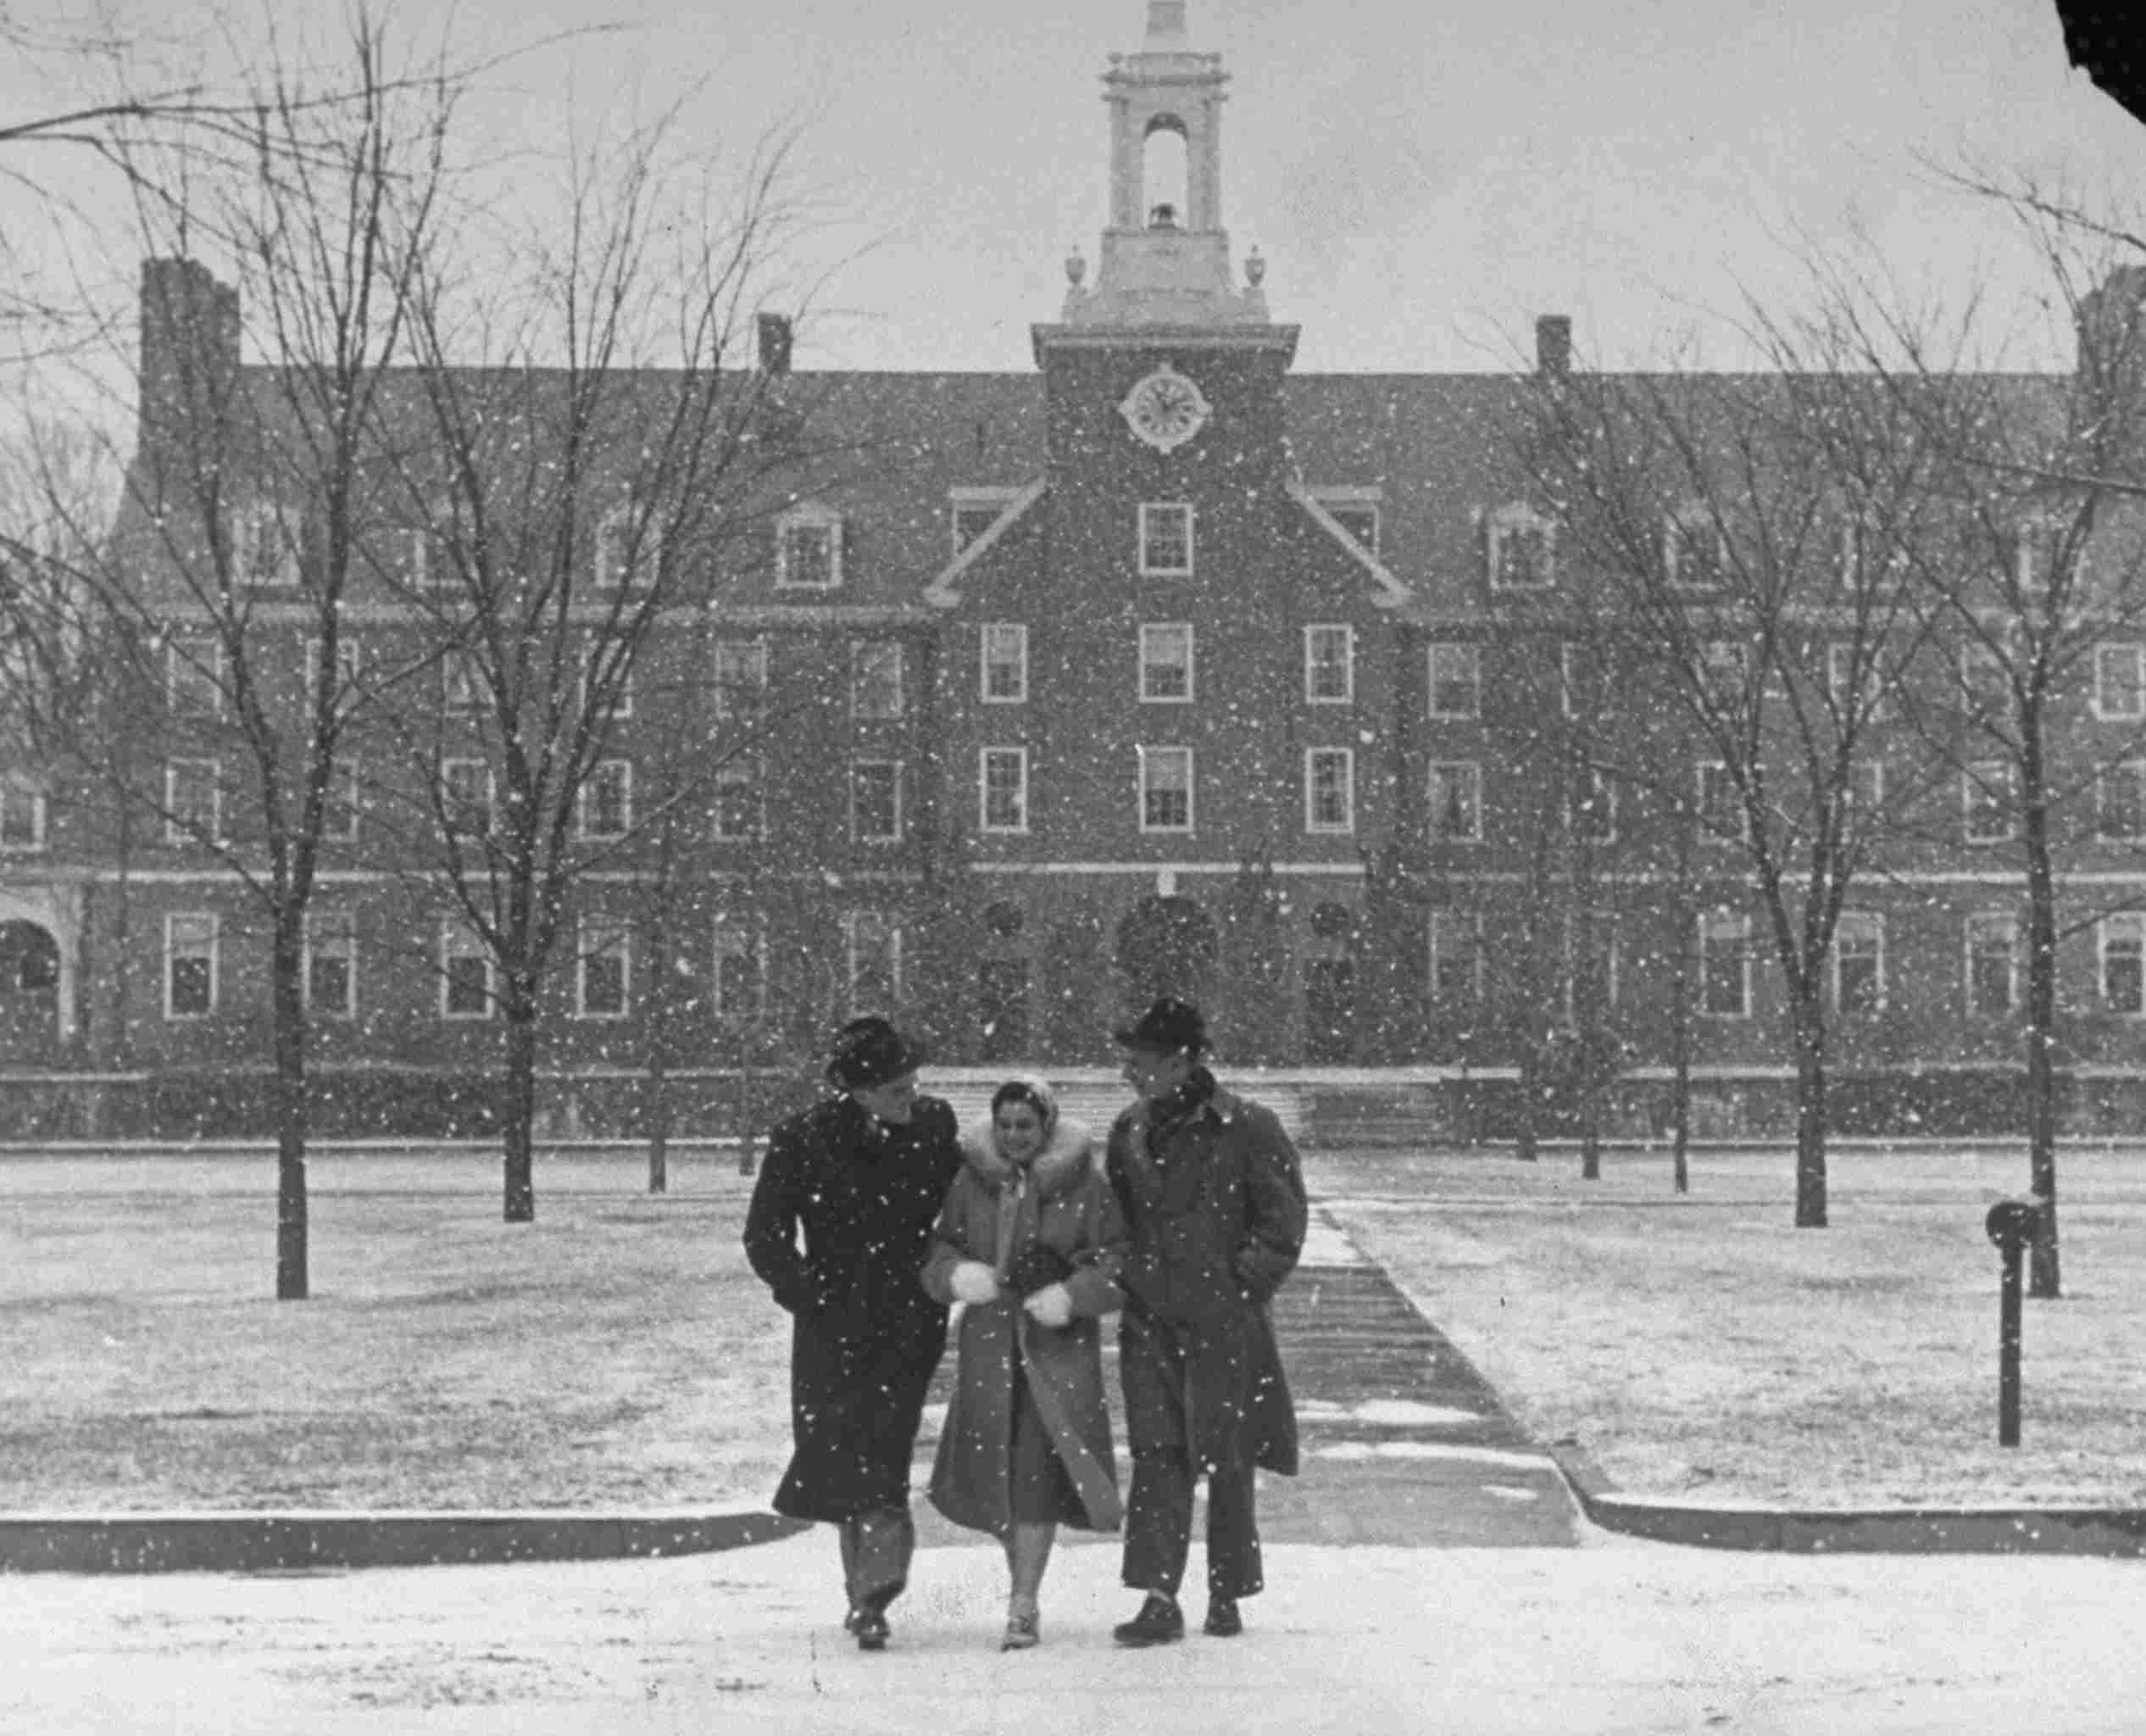 Black and white photo of smith college in the snow